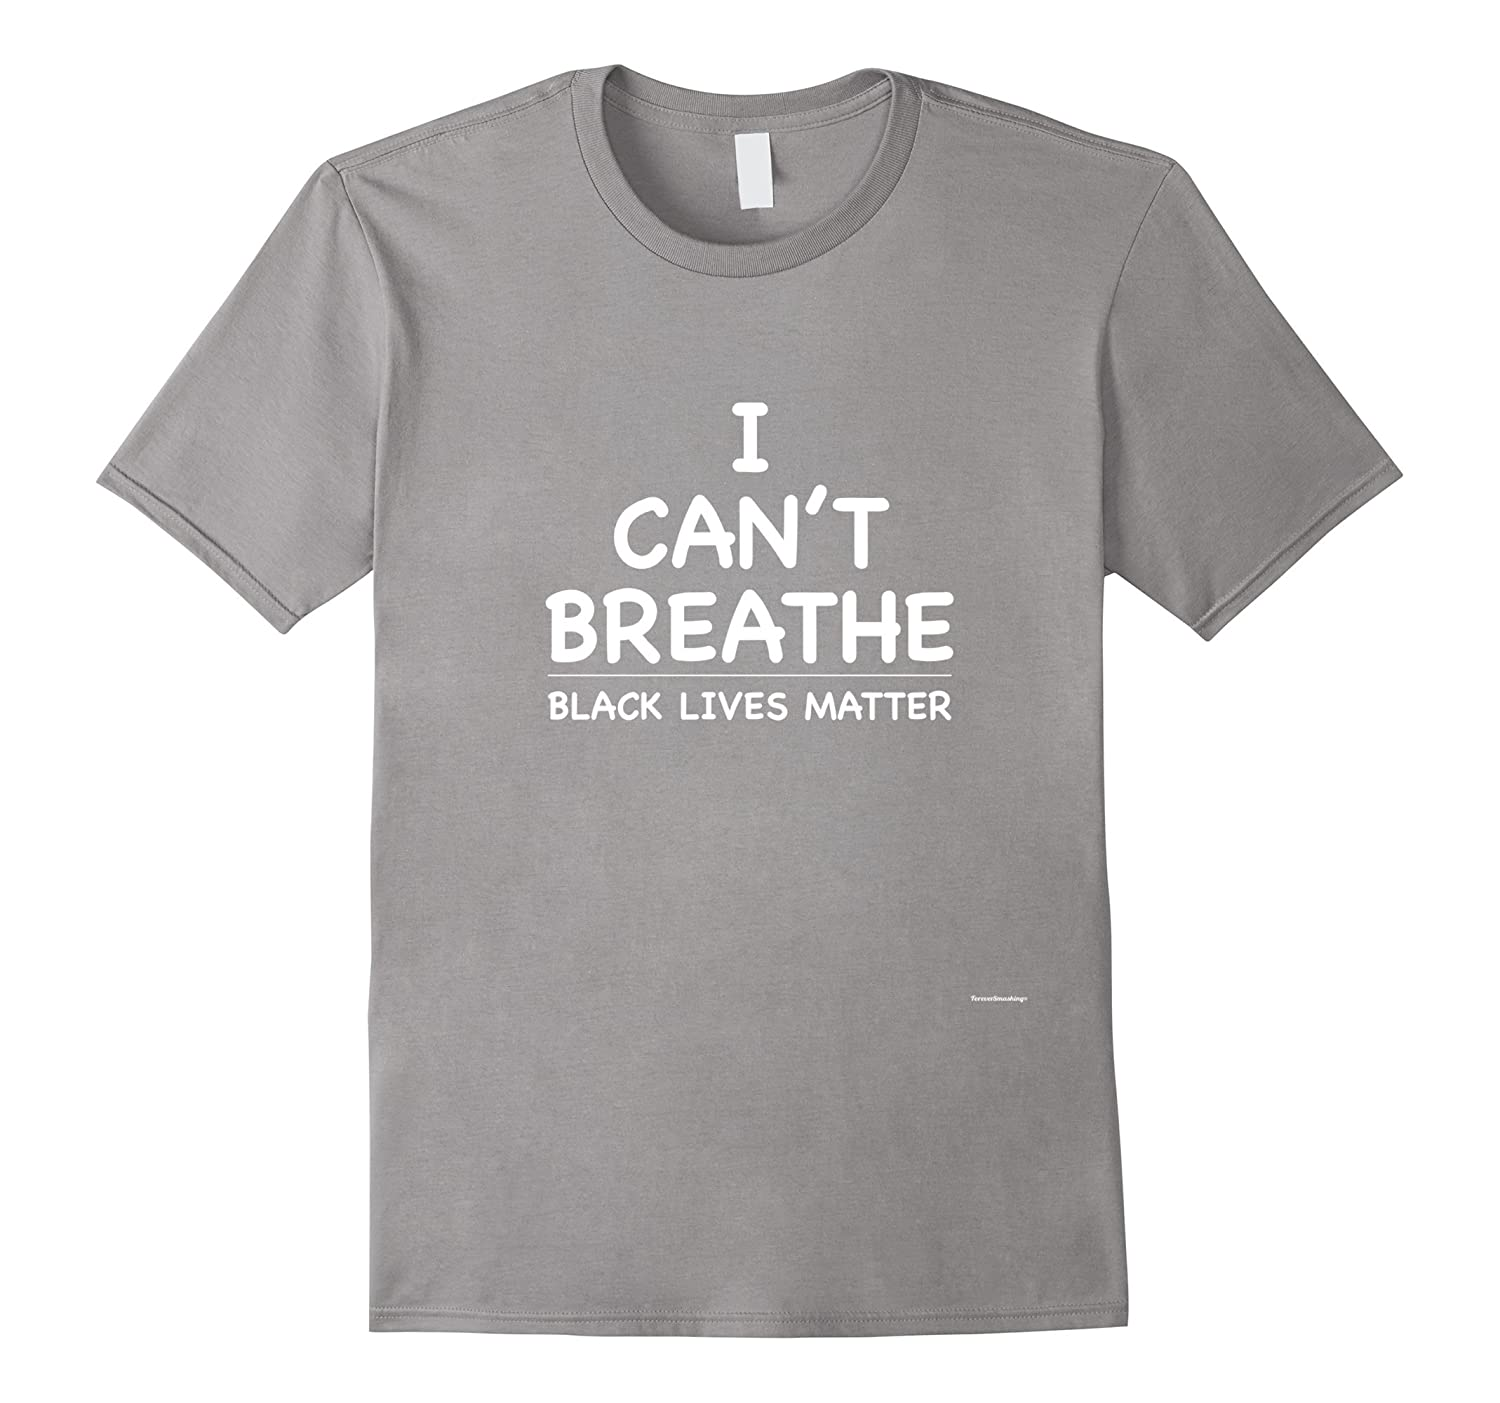 I Can't Breathe Shirt Black Lives Matter Simple Message Tee-T-Shirt